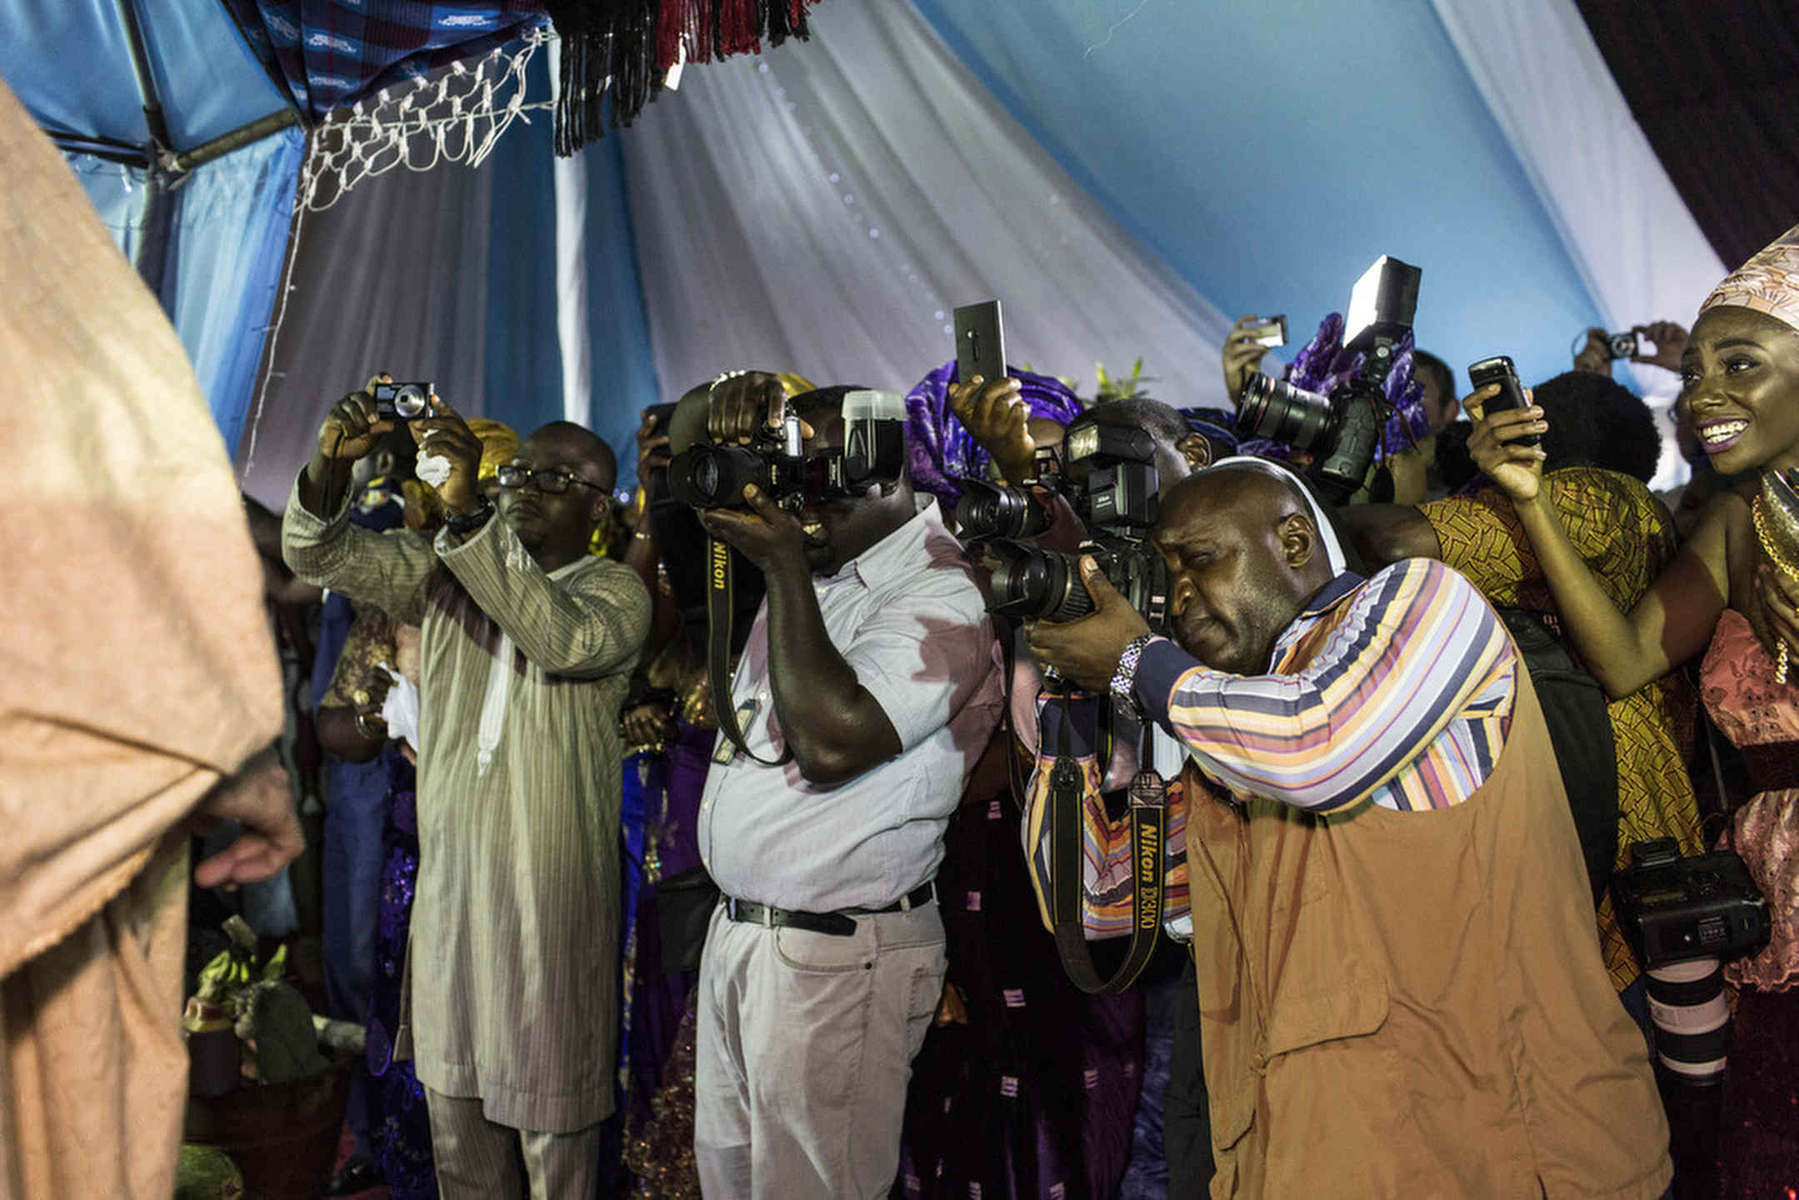 Paparazzi photograph Monica Mark and her husband, the daughter of the President of the Nigerian Senate, in Benue State, Nigeria.